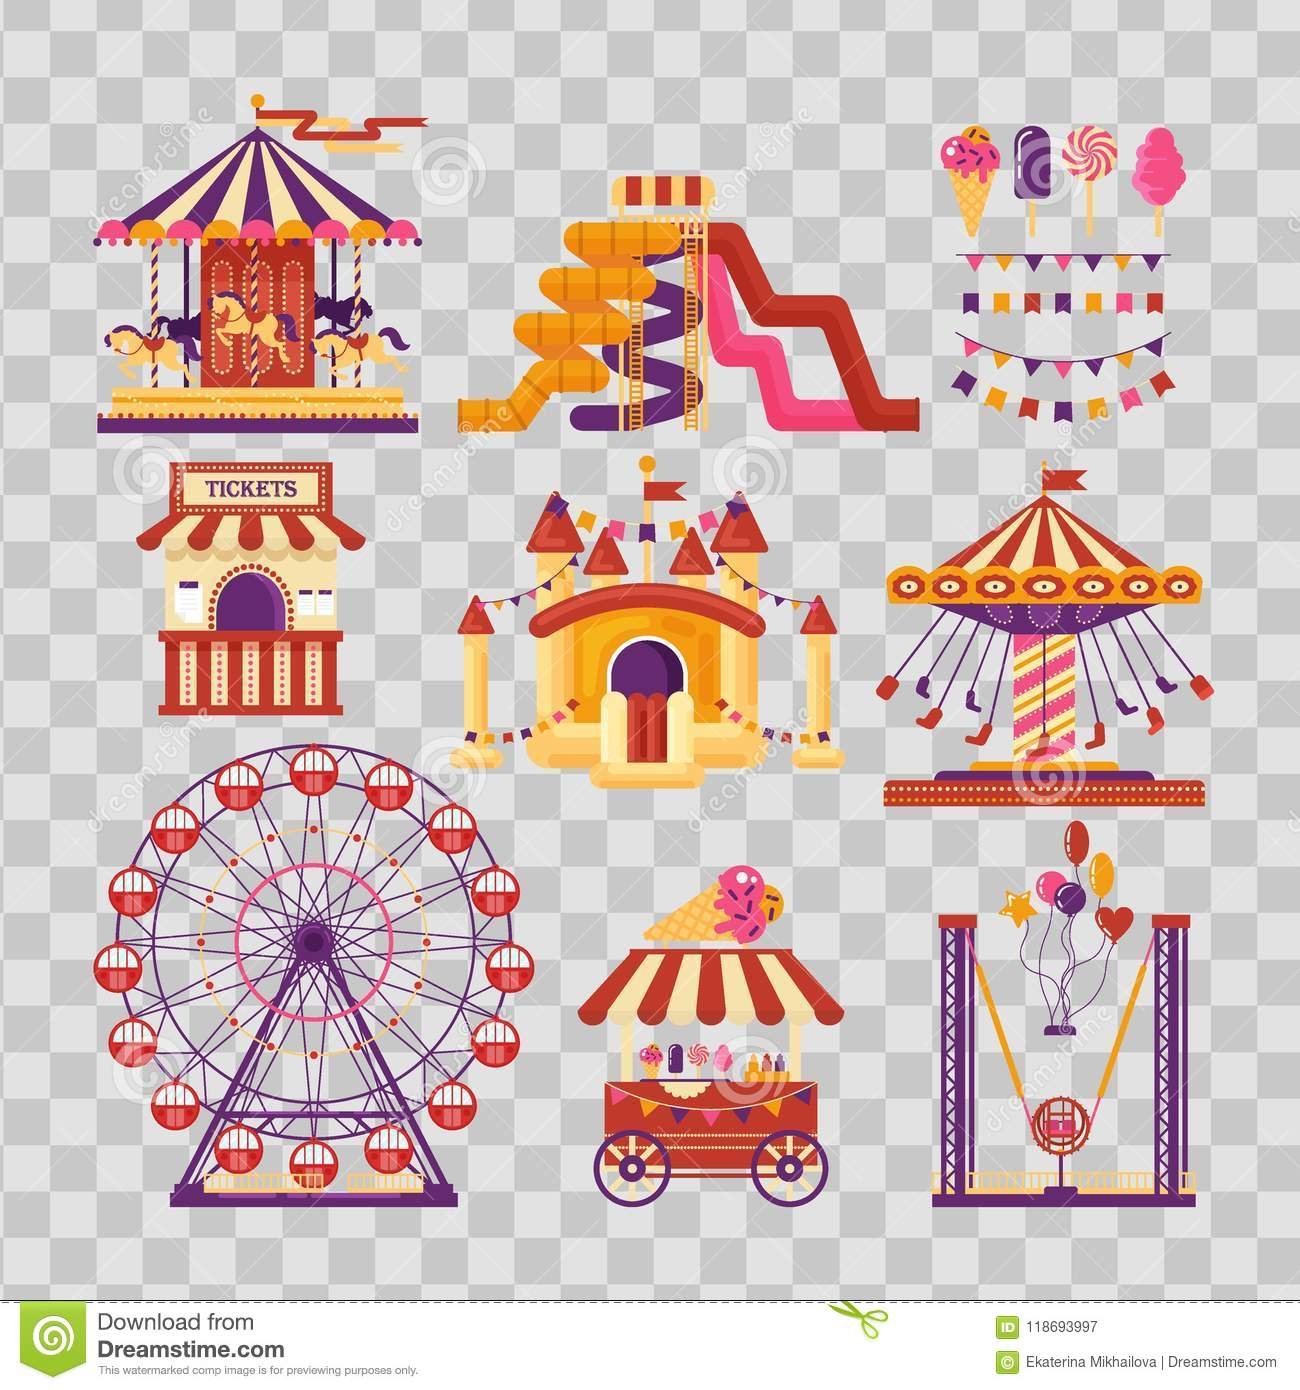 Amusement park flat elements with carousels, waterslides, balloons, flags, inflatable trampoline castle, ferris wheel